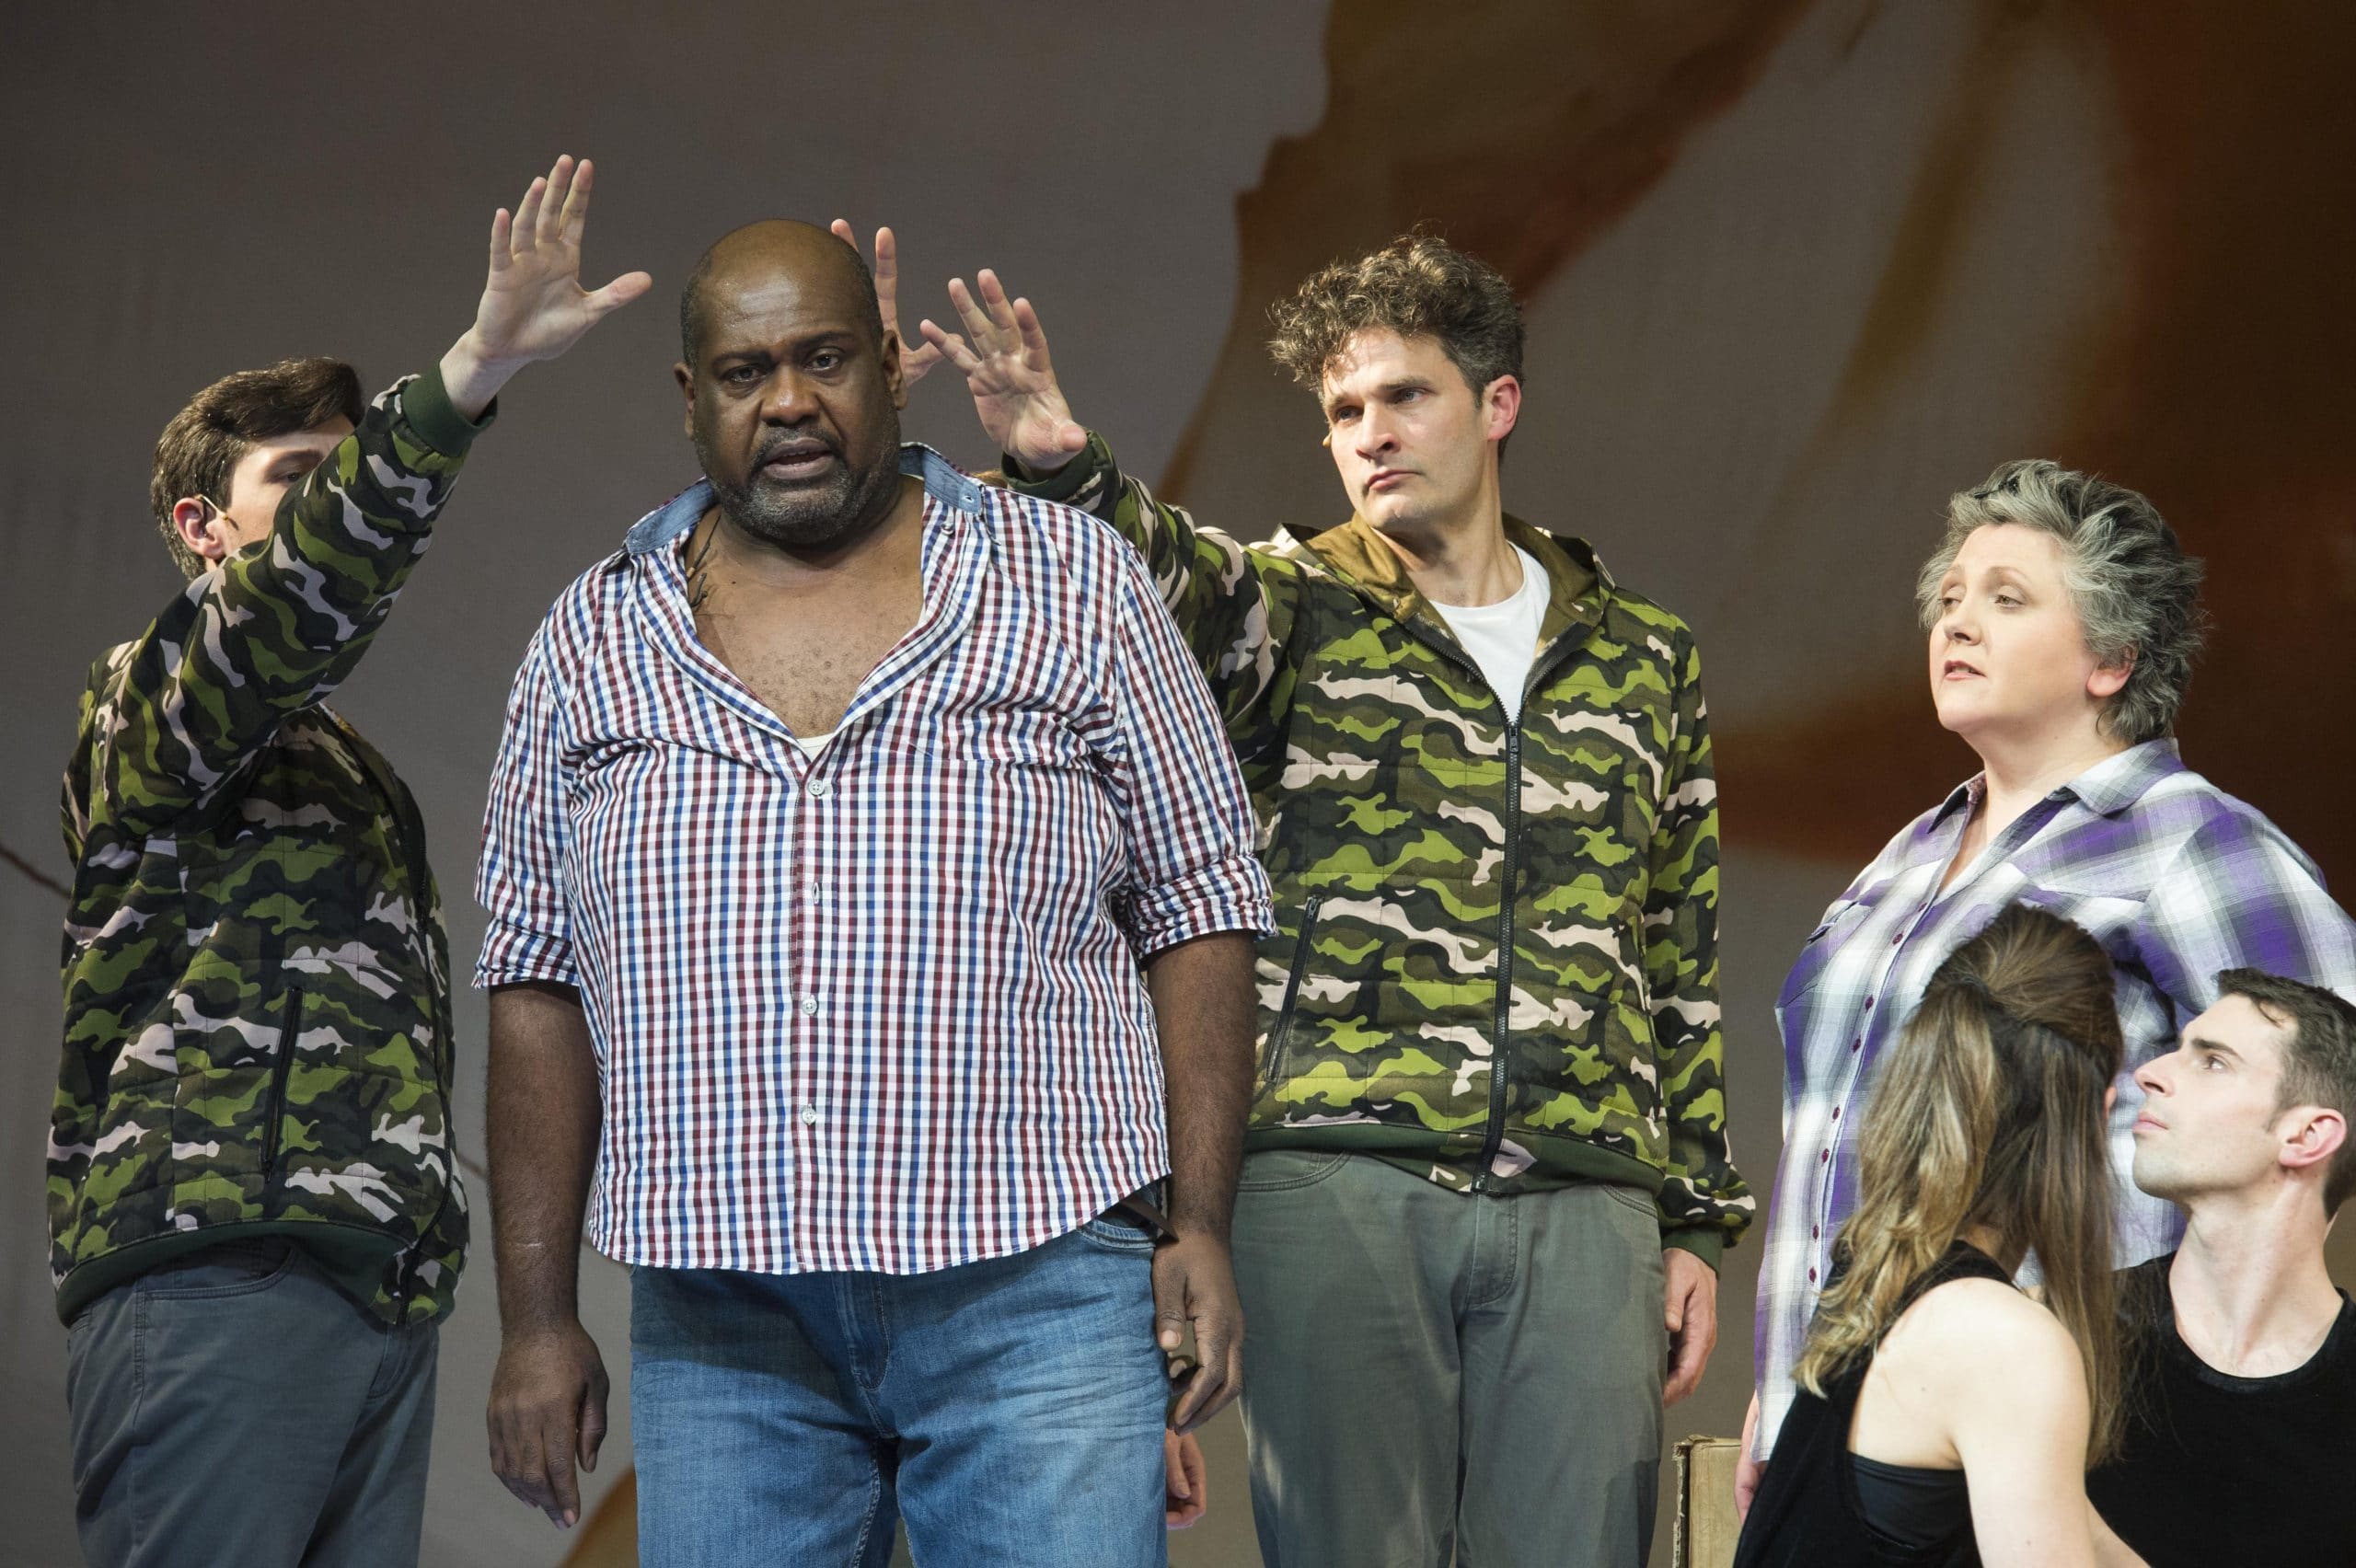 Ronald Samm - The Gospel According to the Other Mary, Theater Bonn